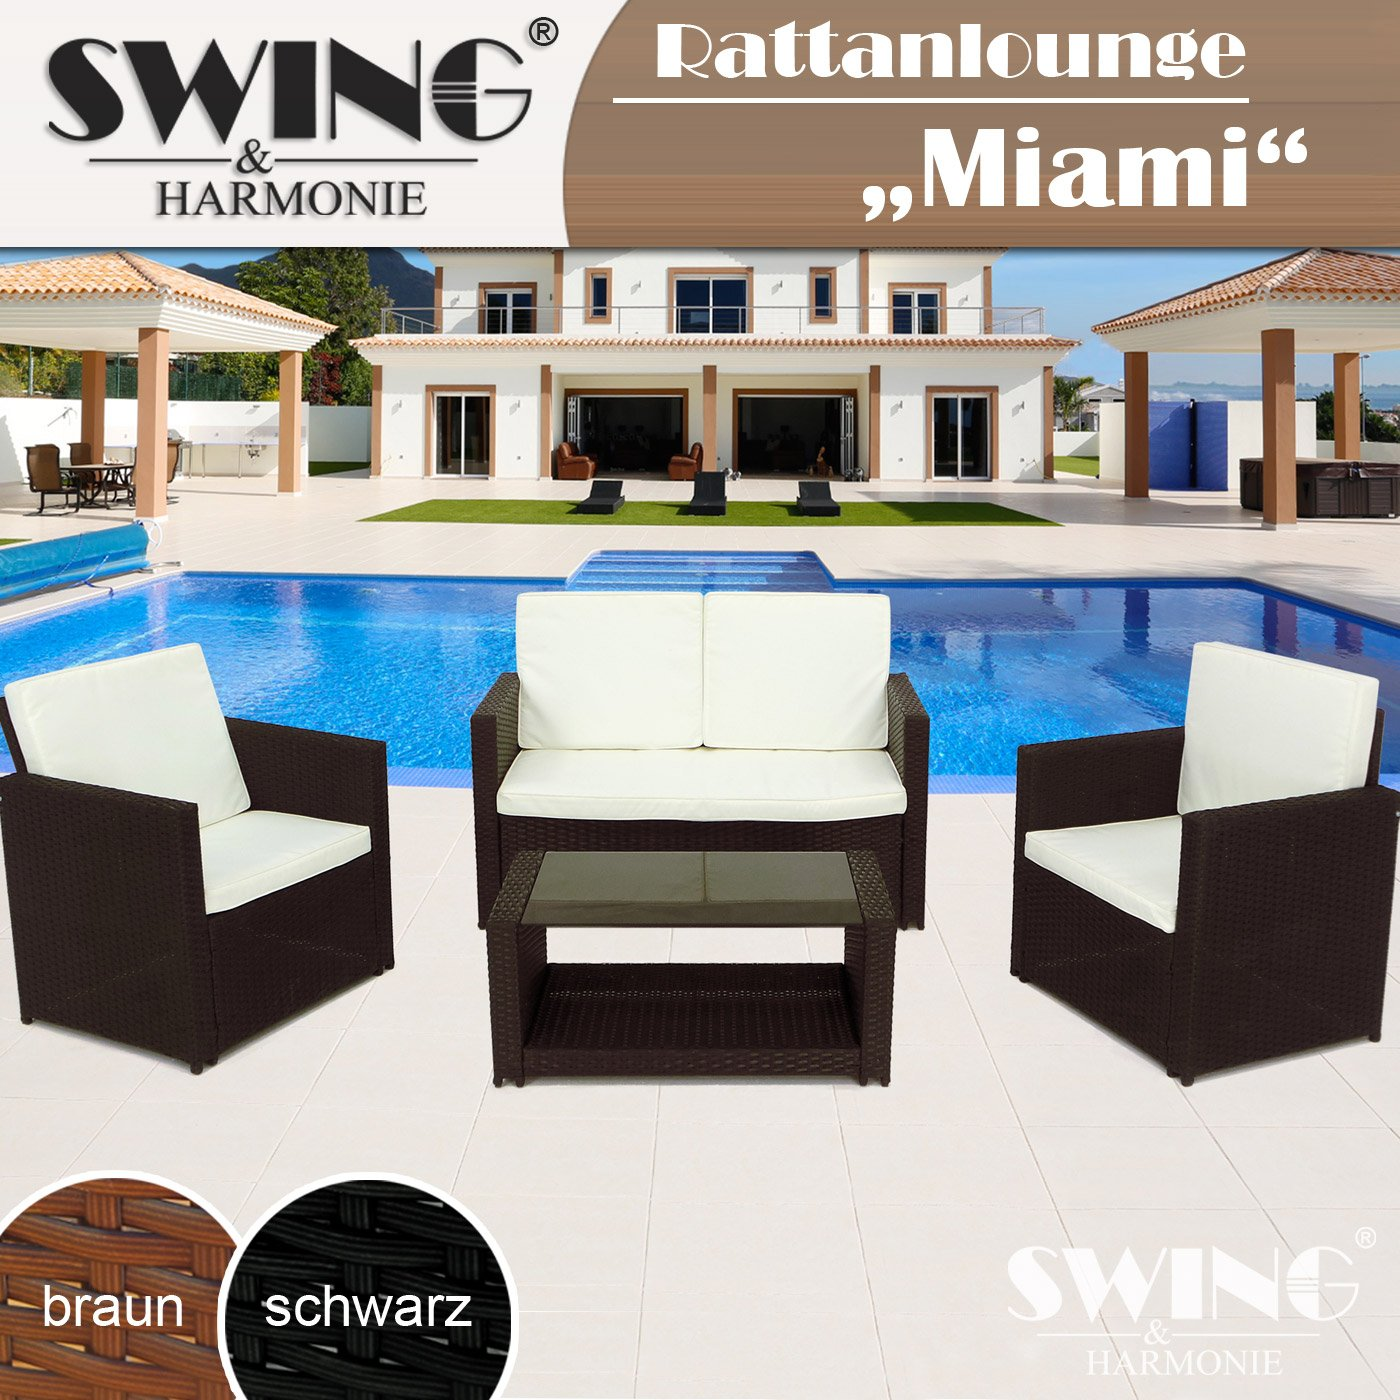 rattan lounge sitzgruppe f r 4 personen sitzgarnitur gartenm bel polyrattan sofa g nstig kaufen. Black Bedroom Furniture Sets. Home Design Ideas